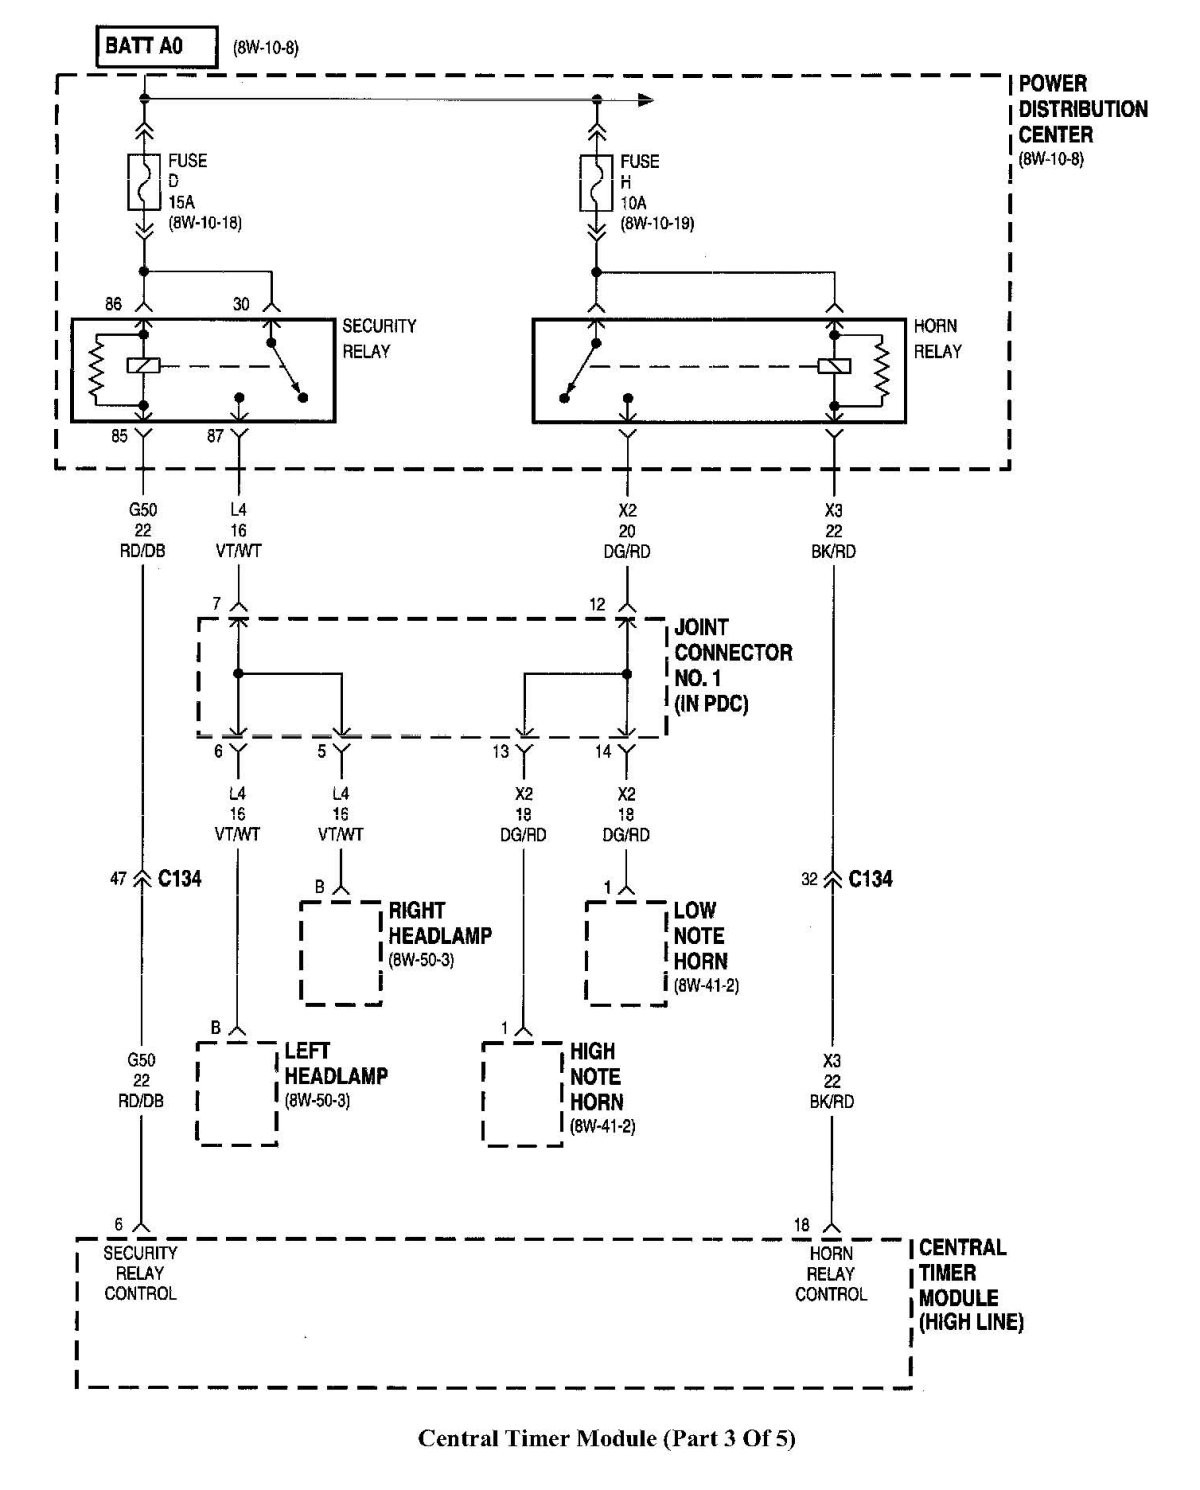 1998 dodge dakota headlight switch wiring diagram Download-2004 dodge ram headlight wiring diagram wire center u2022 rh savvigroup co 1999 dodge ram 2500 headlight switch wiring diagram 1997 Dodge Ram 2500 Wiring 4-l